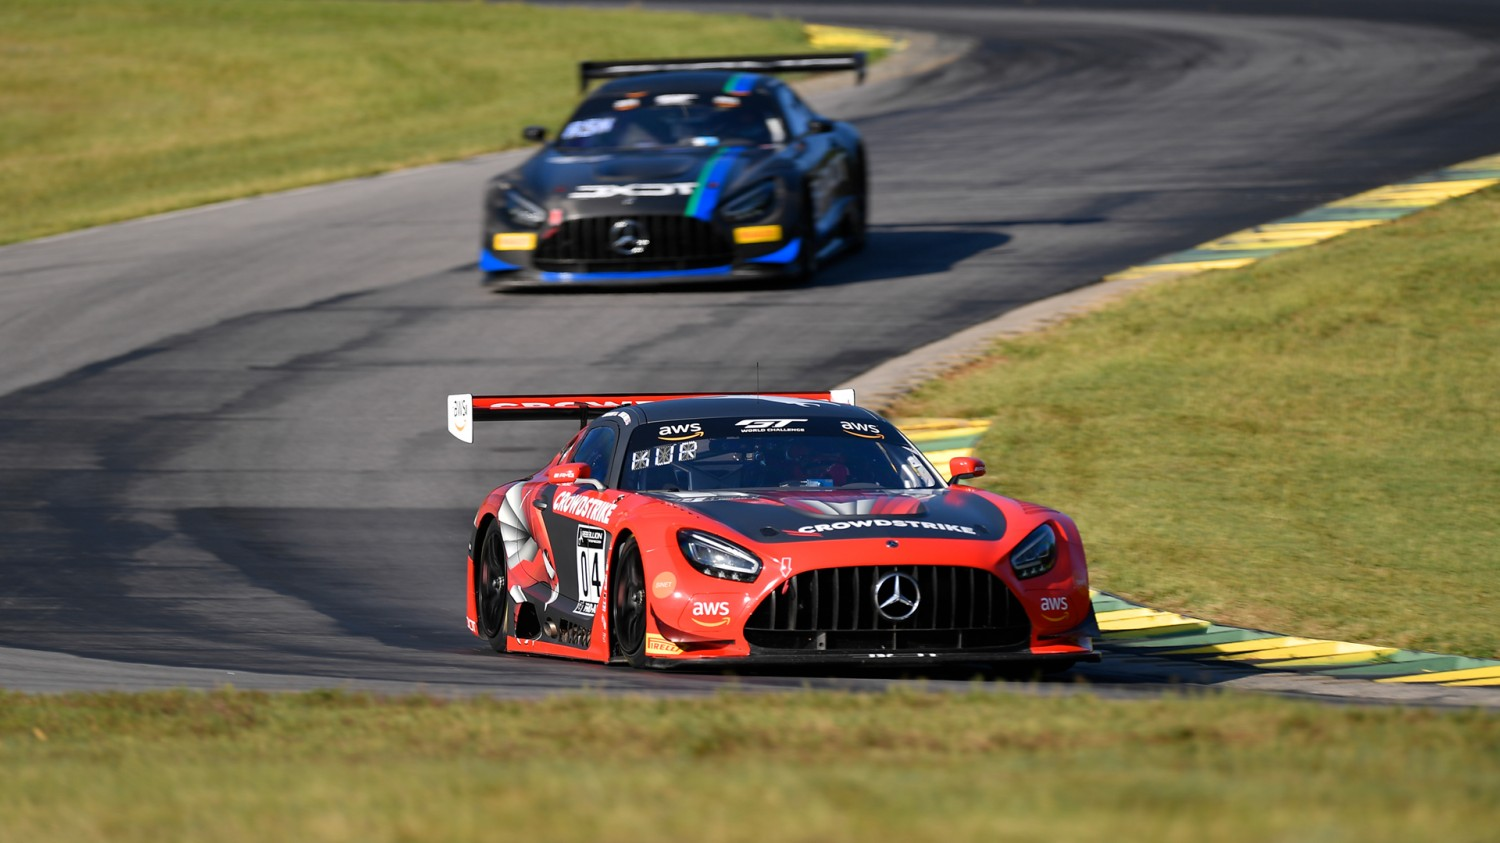 Mercedes-AMG Motorsport Customer Racing Teams Secure Three Race Wins, Five Podium Finishes in Competitive VIR Weekend